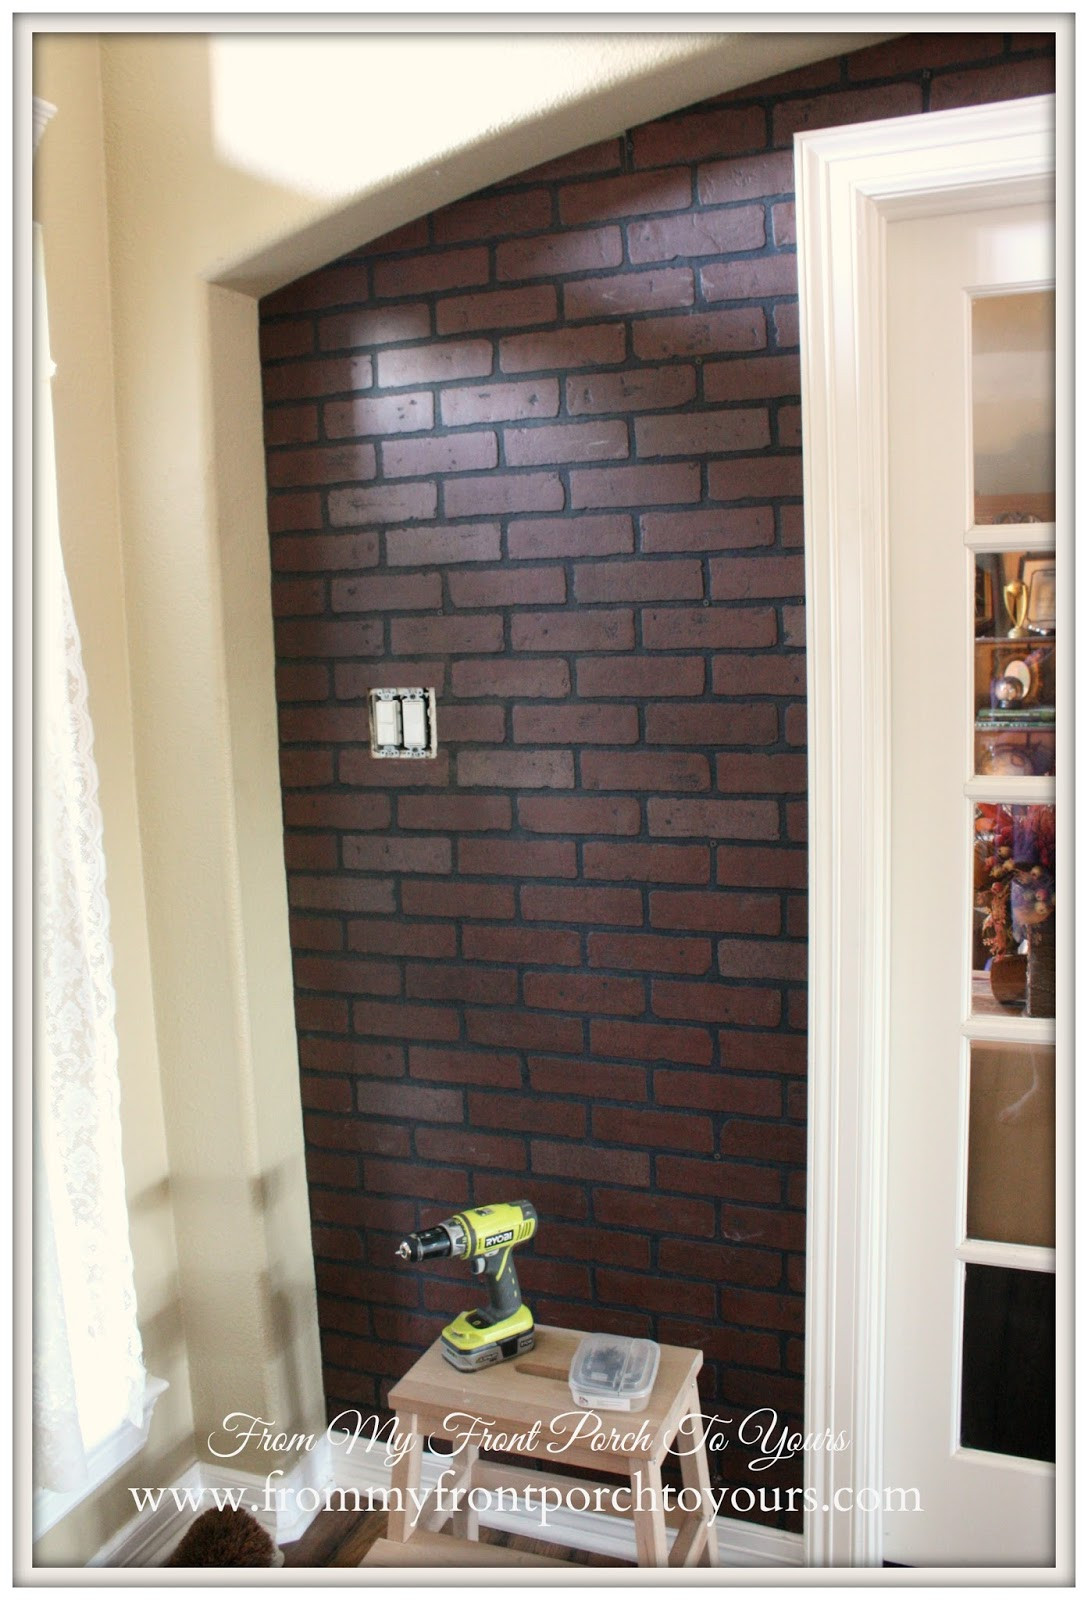 Best ideas about DIY Brick Walls . Save or Pin From My Front Porch To Yours DIY Faux Brick Wall Part 1 Now.